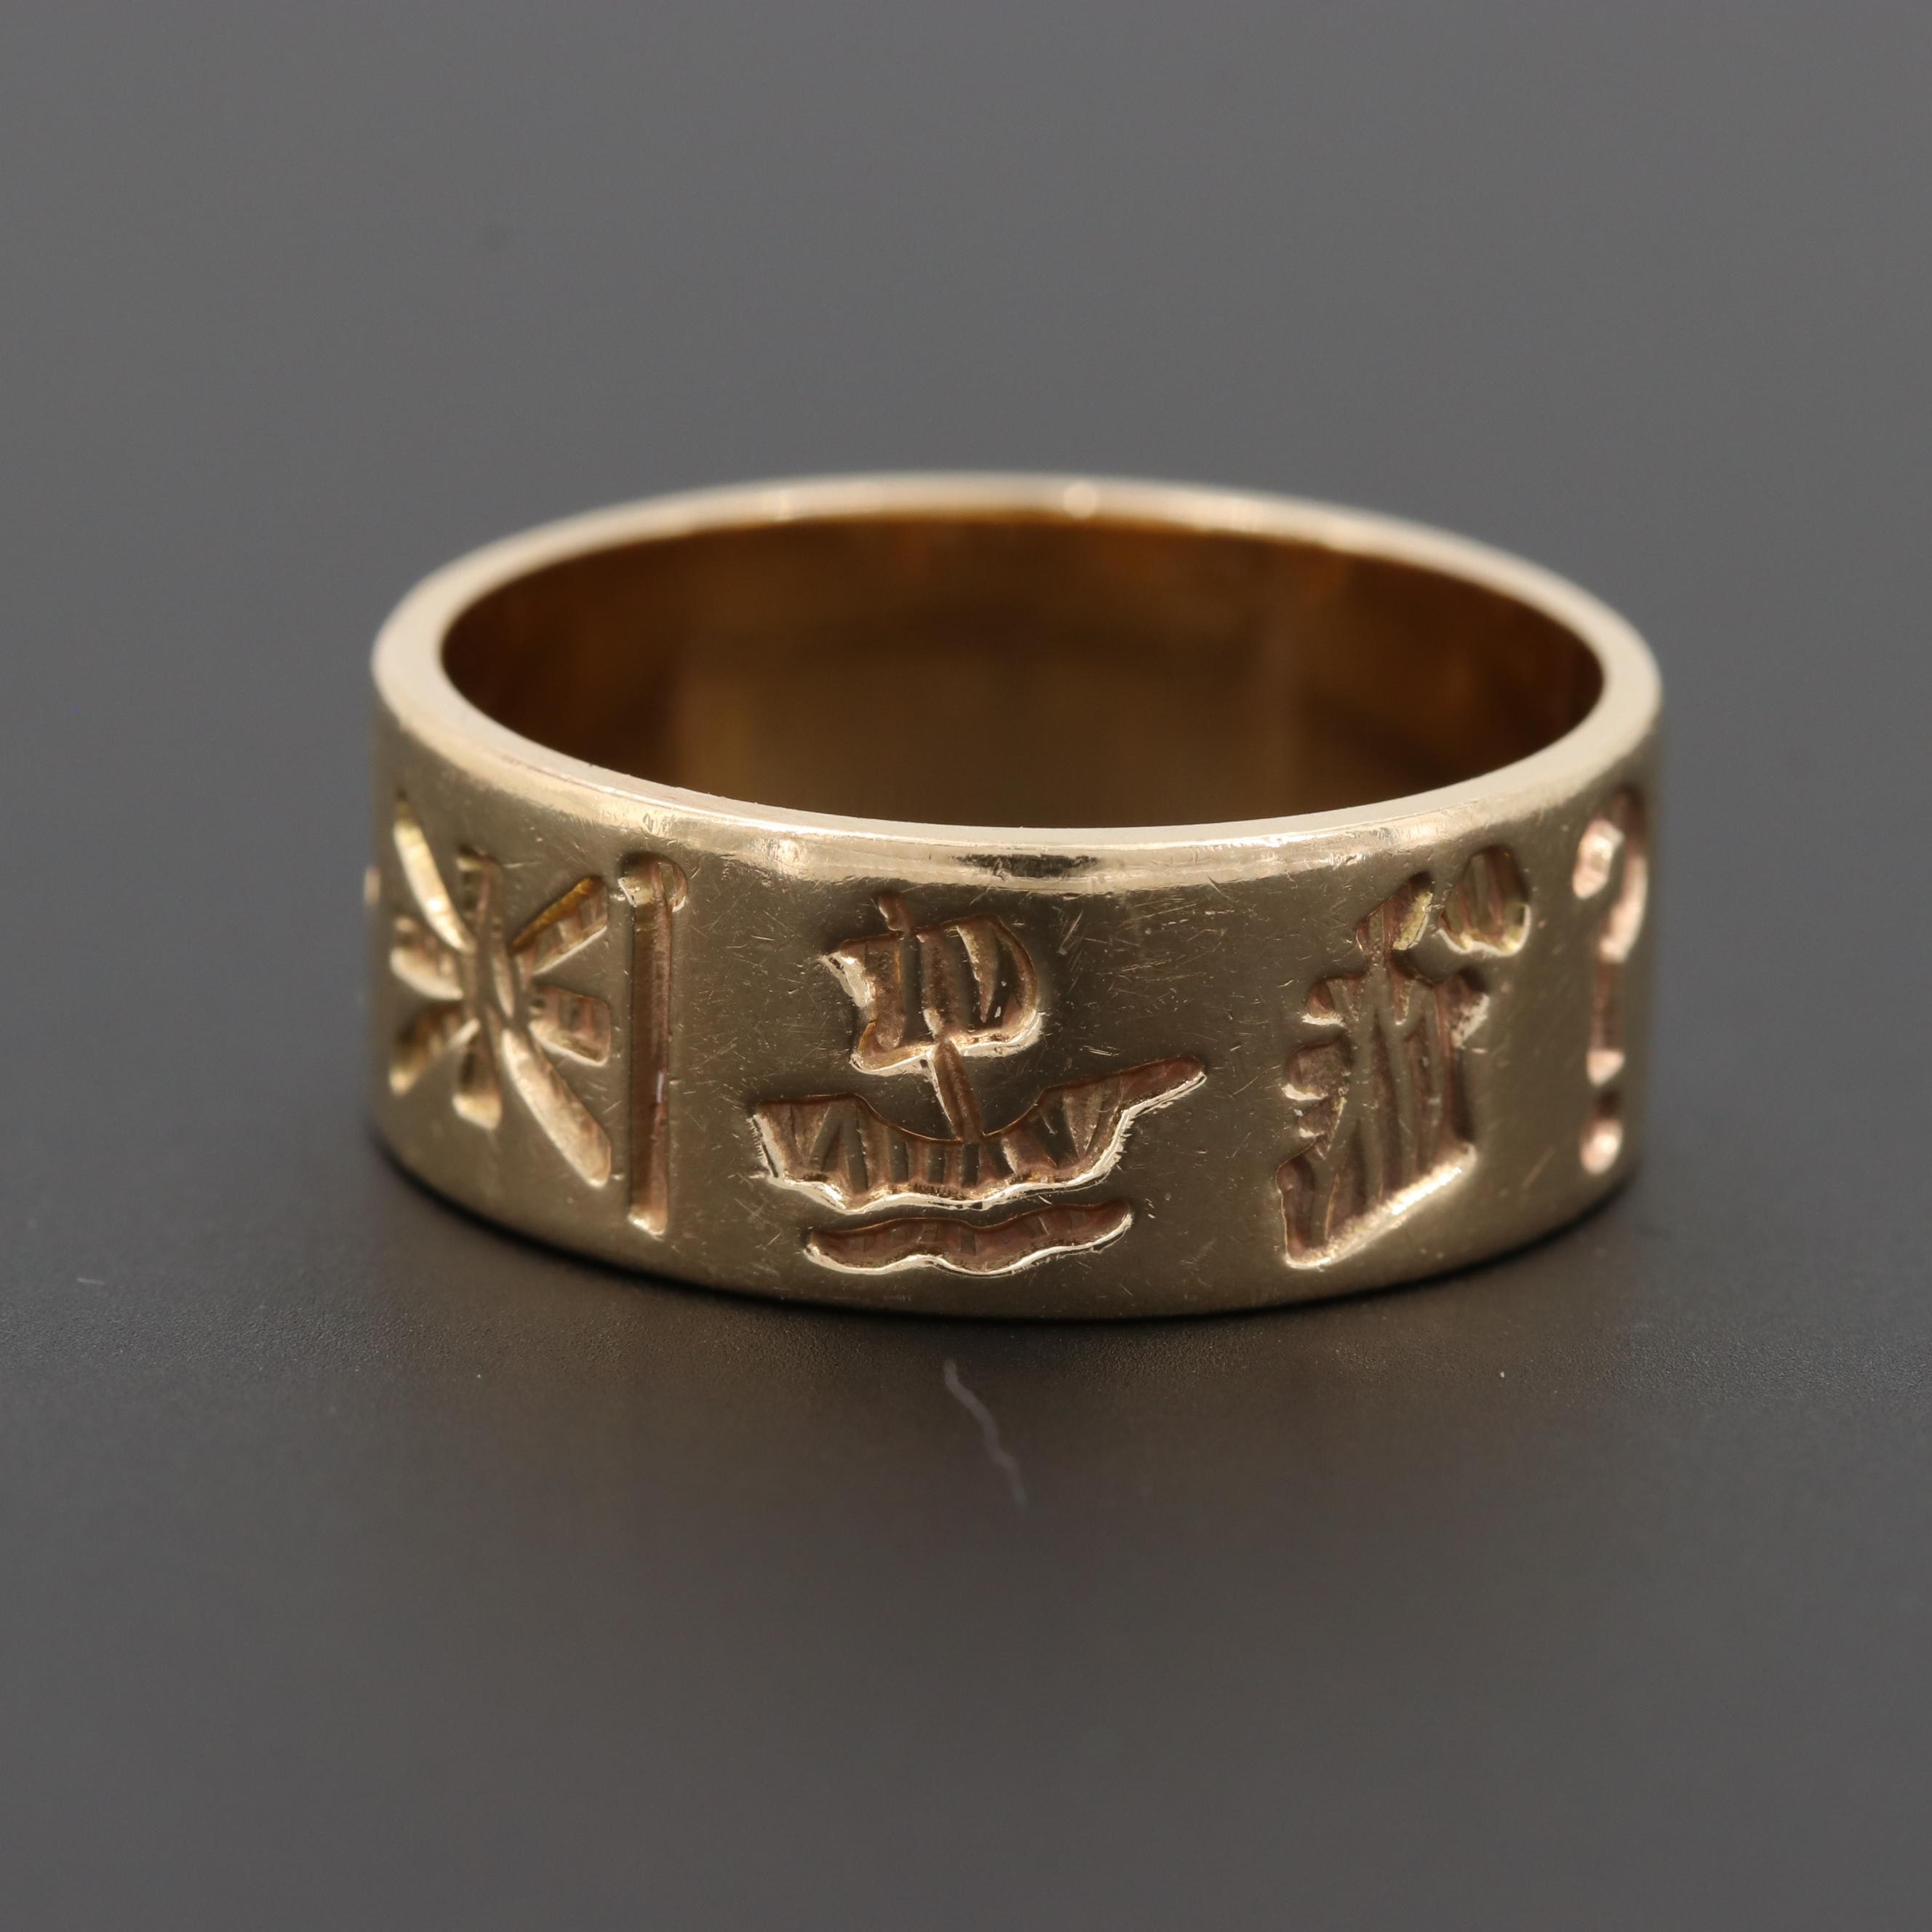 Irish 14K Yellow Gold Band with Stamped Images Including St Patrick